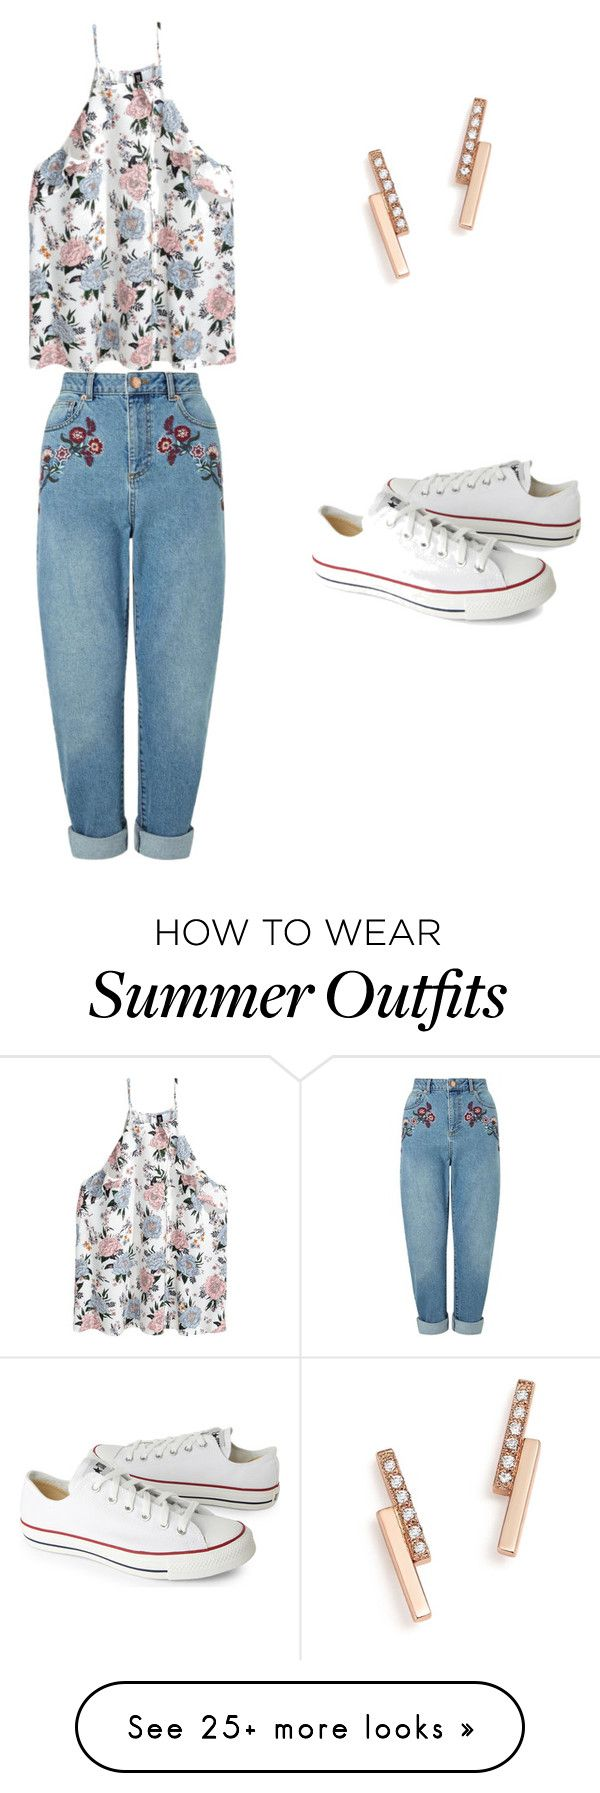 """Summer outfit"" by estefaniacervantes44 on Polyvore featuring Zoë C..."